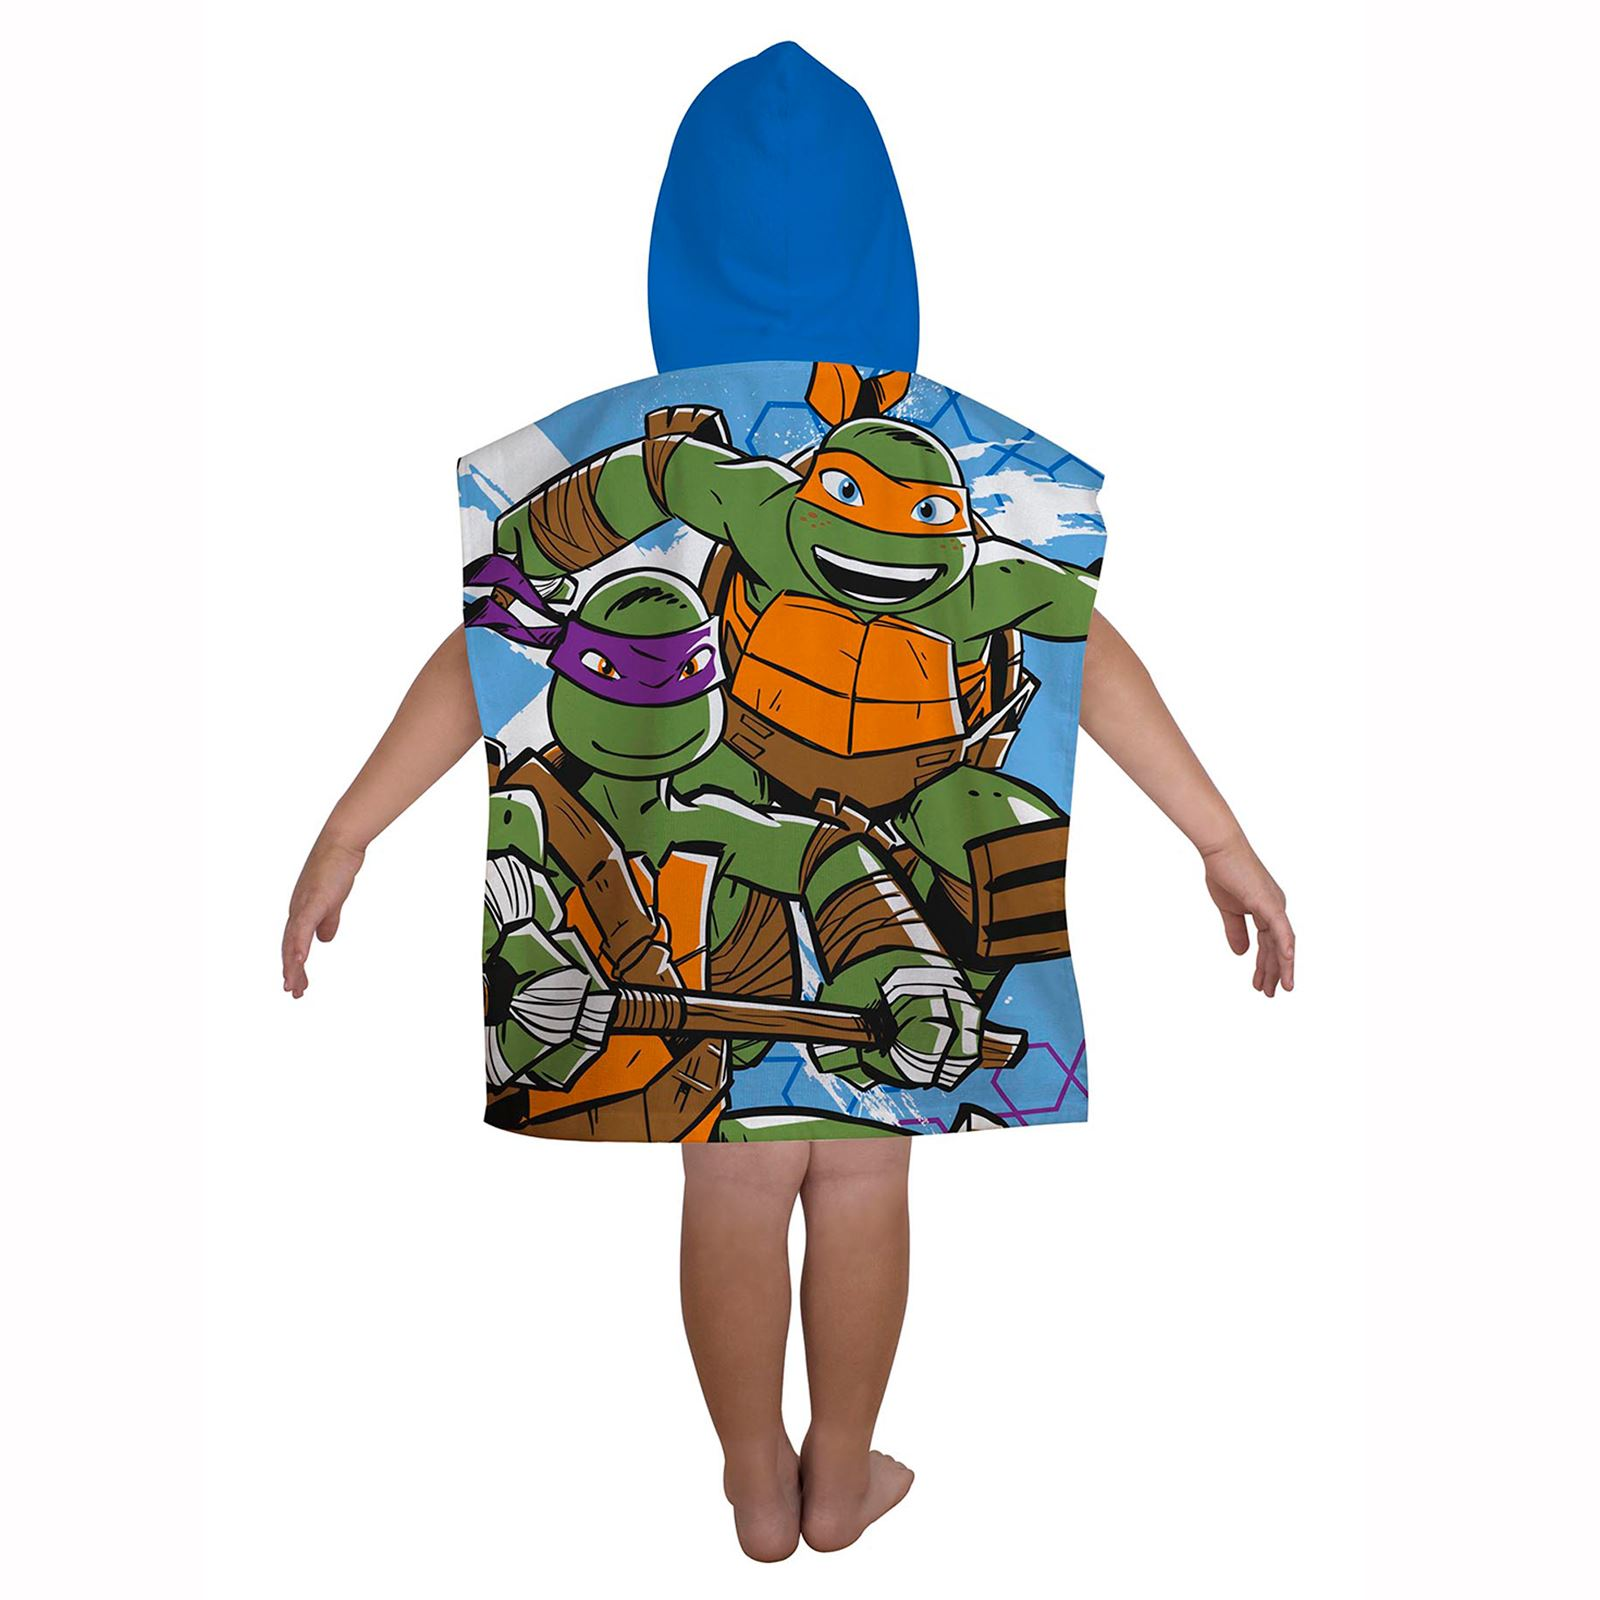 neu teenage mutant ninja turtles abmessung poncho handtuch offizieller kinder ebay. Black Bedroom Furniture Sets. Home Design Ideas